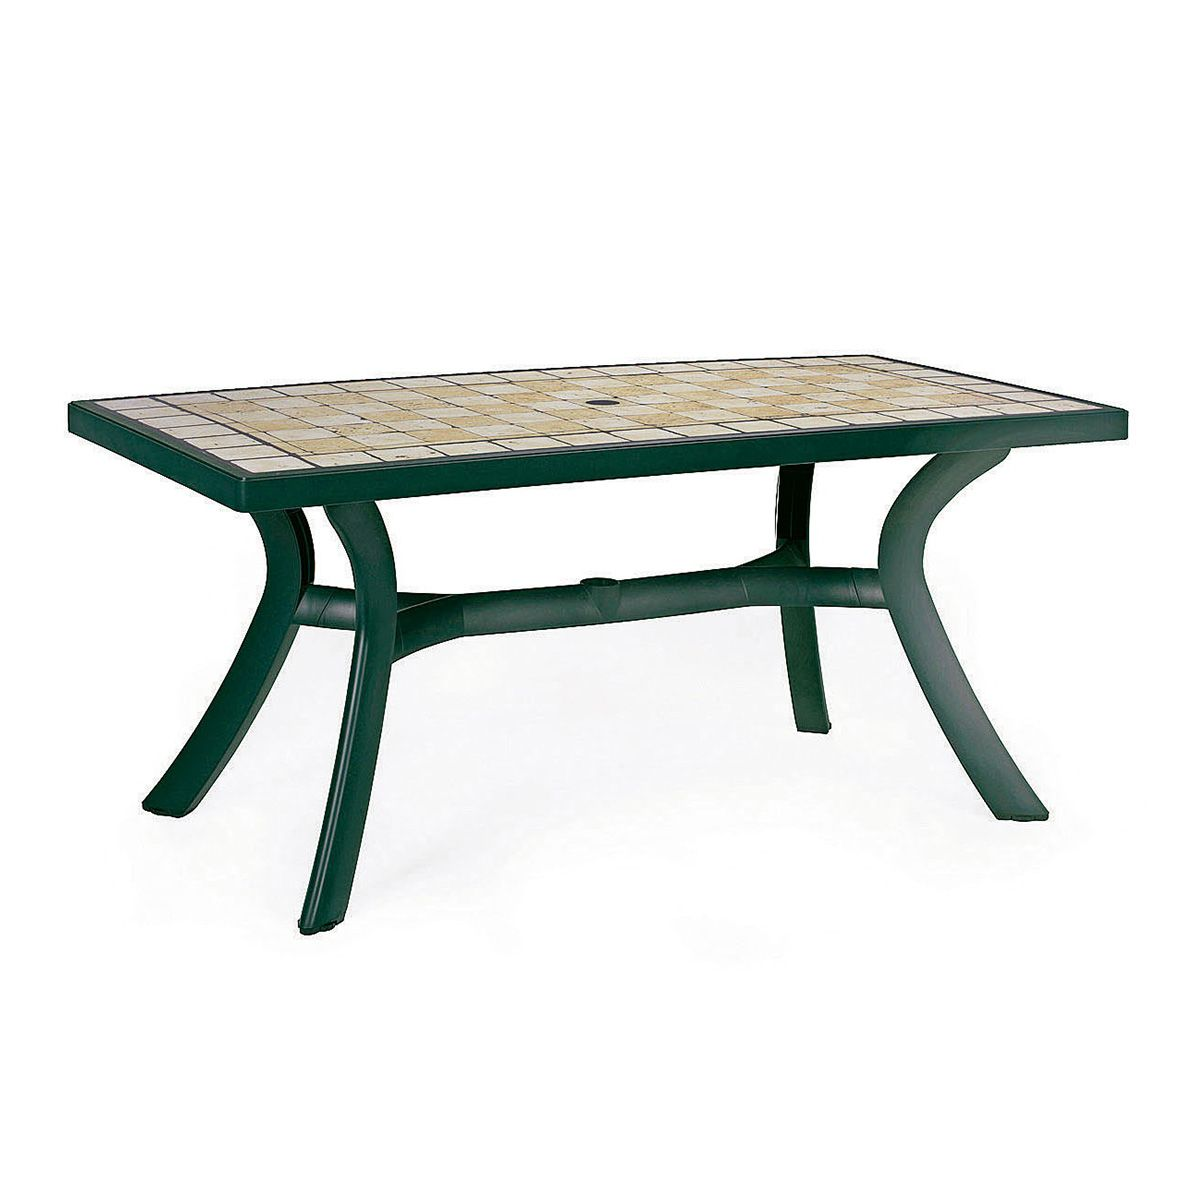 Table jardin plastique nardi toscana 160 zendart design for Table jardin design